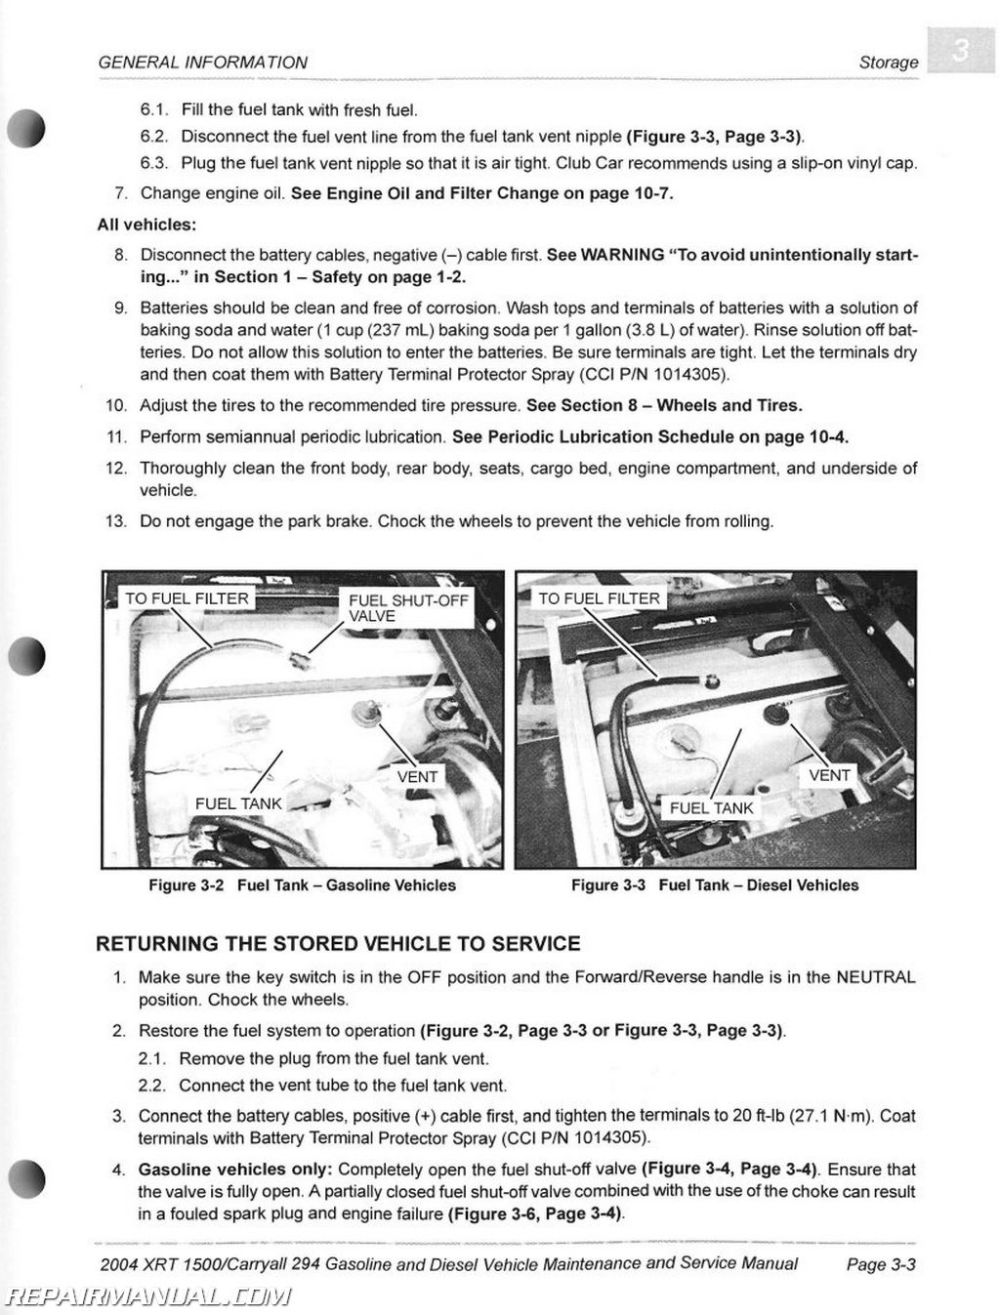 medium resolution of 2004 club car carryall 294 and xrt 1500 maintenance and service manual club car xrt wiring diagram